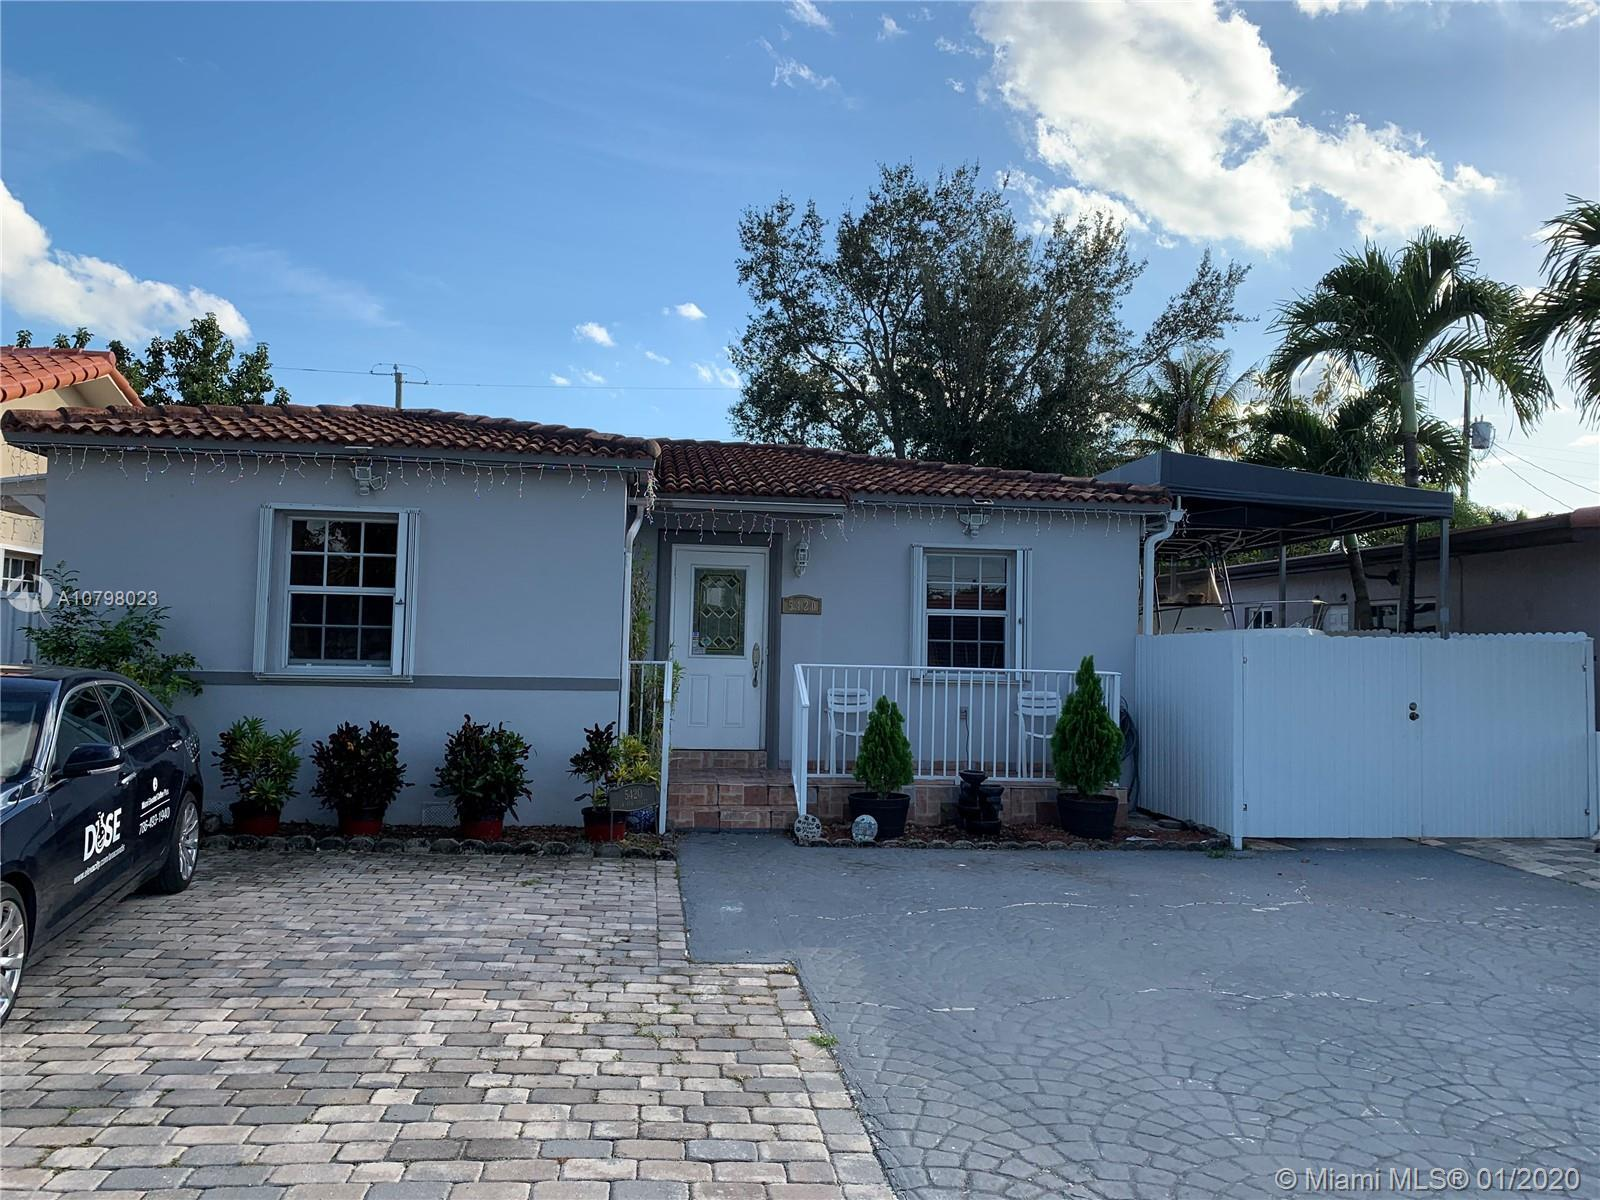 EXCELLENT FAMILY HOME FOR SALE, LOCATED IN PRESTIGIOUS NEIGHBORHOOD OF CORAL GABLES, NEAR ALL MIAMI